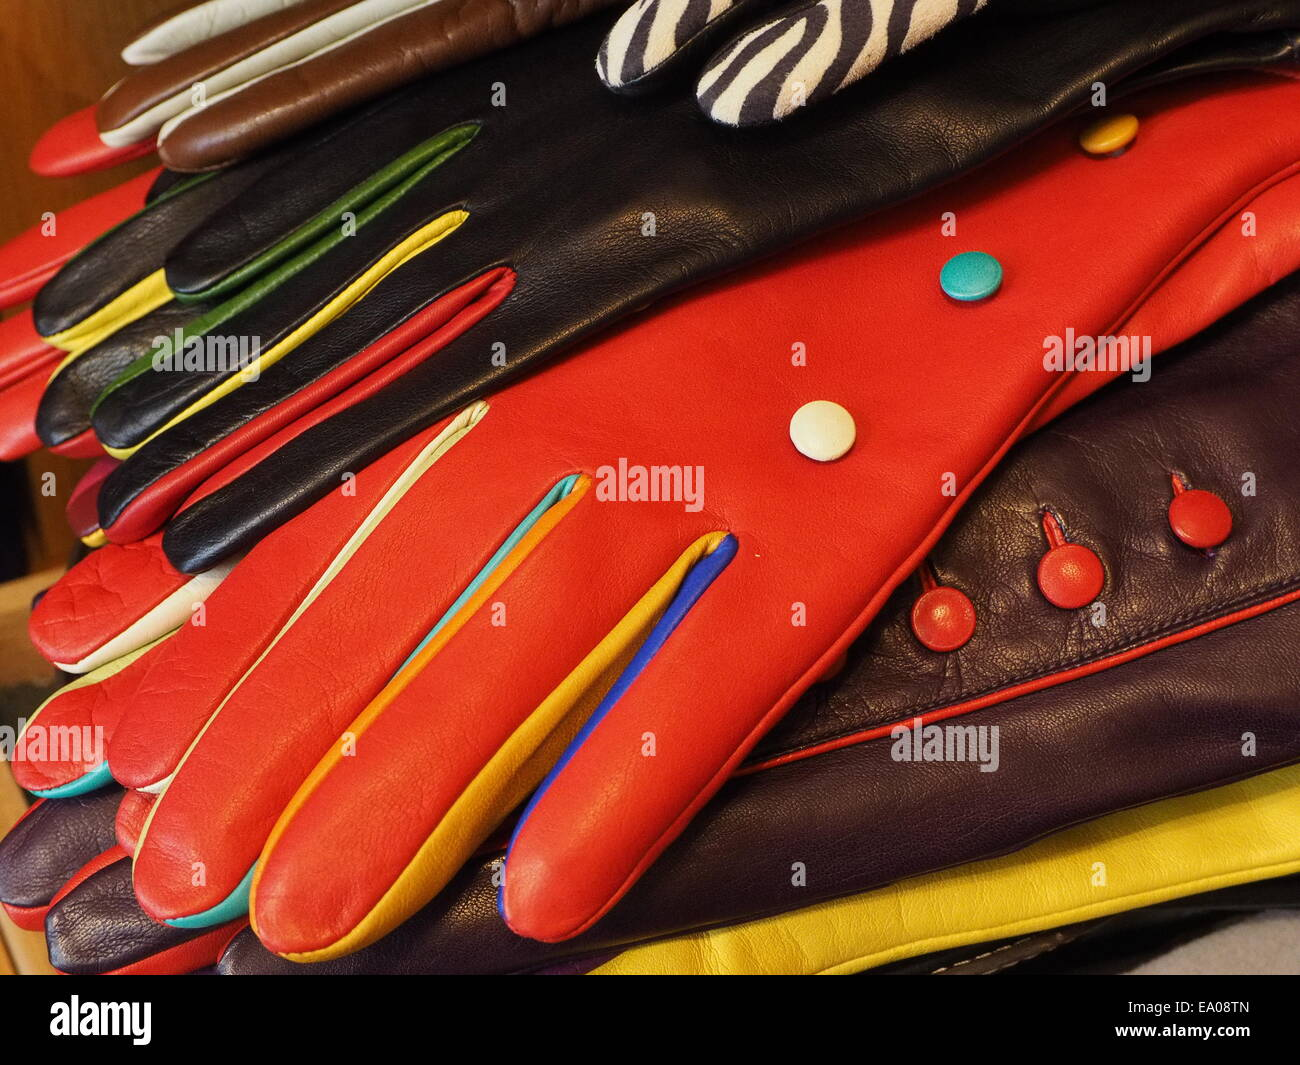 Display of brightly coloured colored overlapping high quality leather gloves - Stock Image